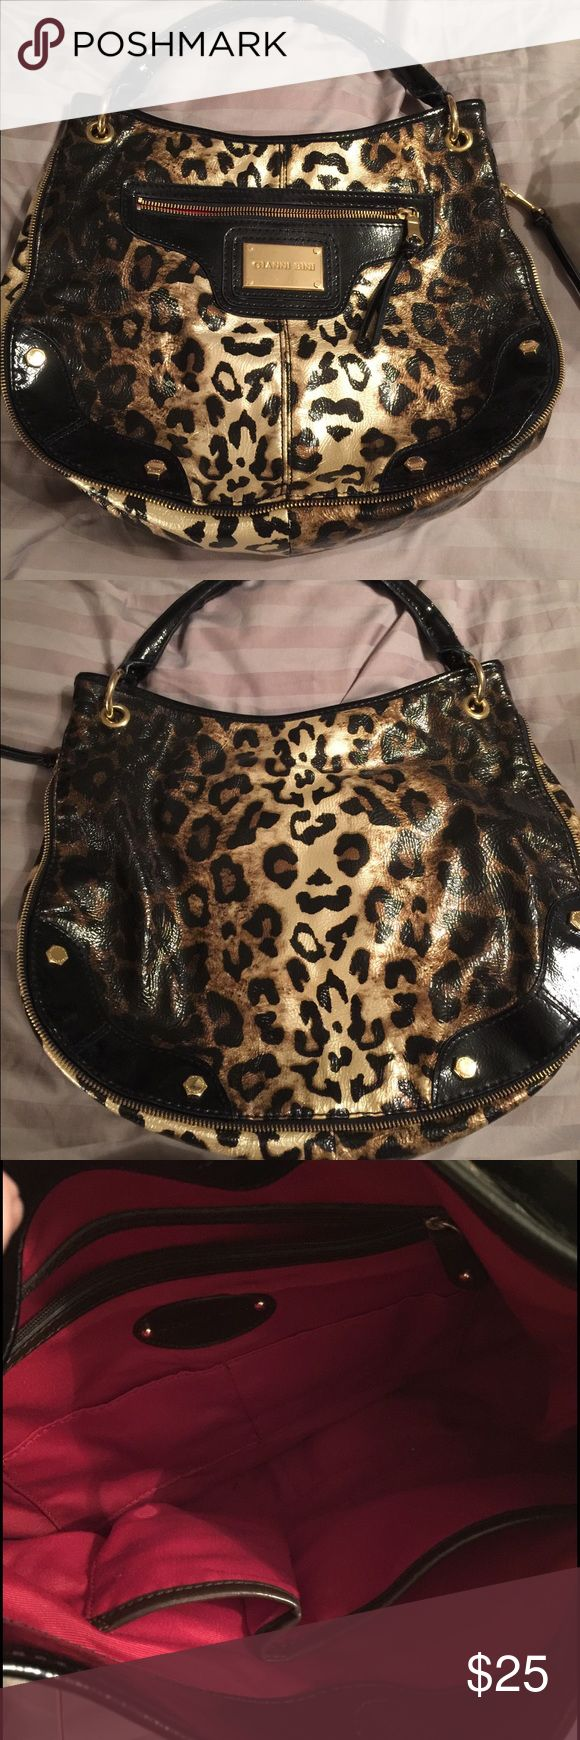 Gianni Bini Leopard Print Hobo Bag Large Gianni Bini Leopard Print hobo bag. No obvious signs of wear. Excellent condition. Gianni Bini Bags Hobos